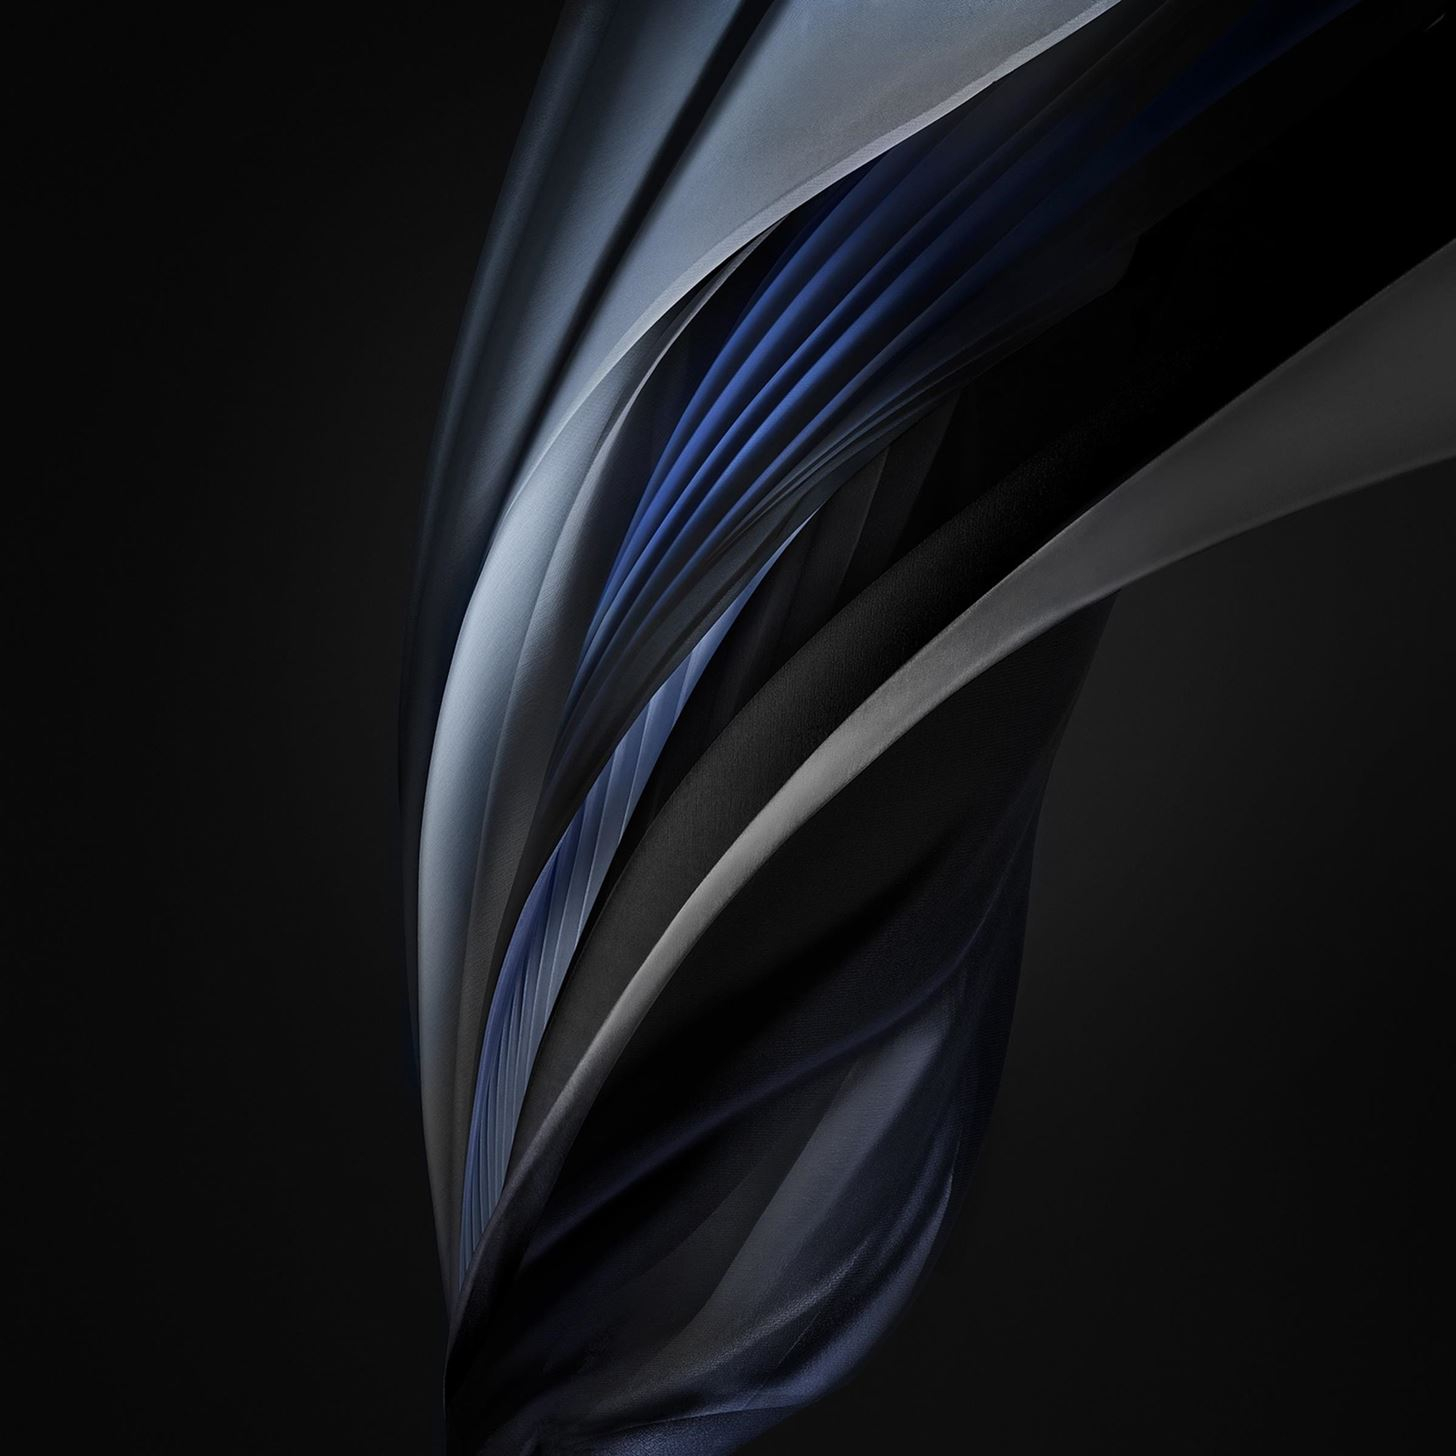 2020 iphone ses exclusive wallpapers any phone